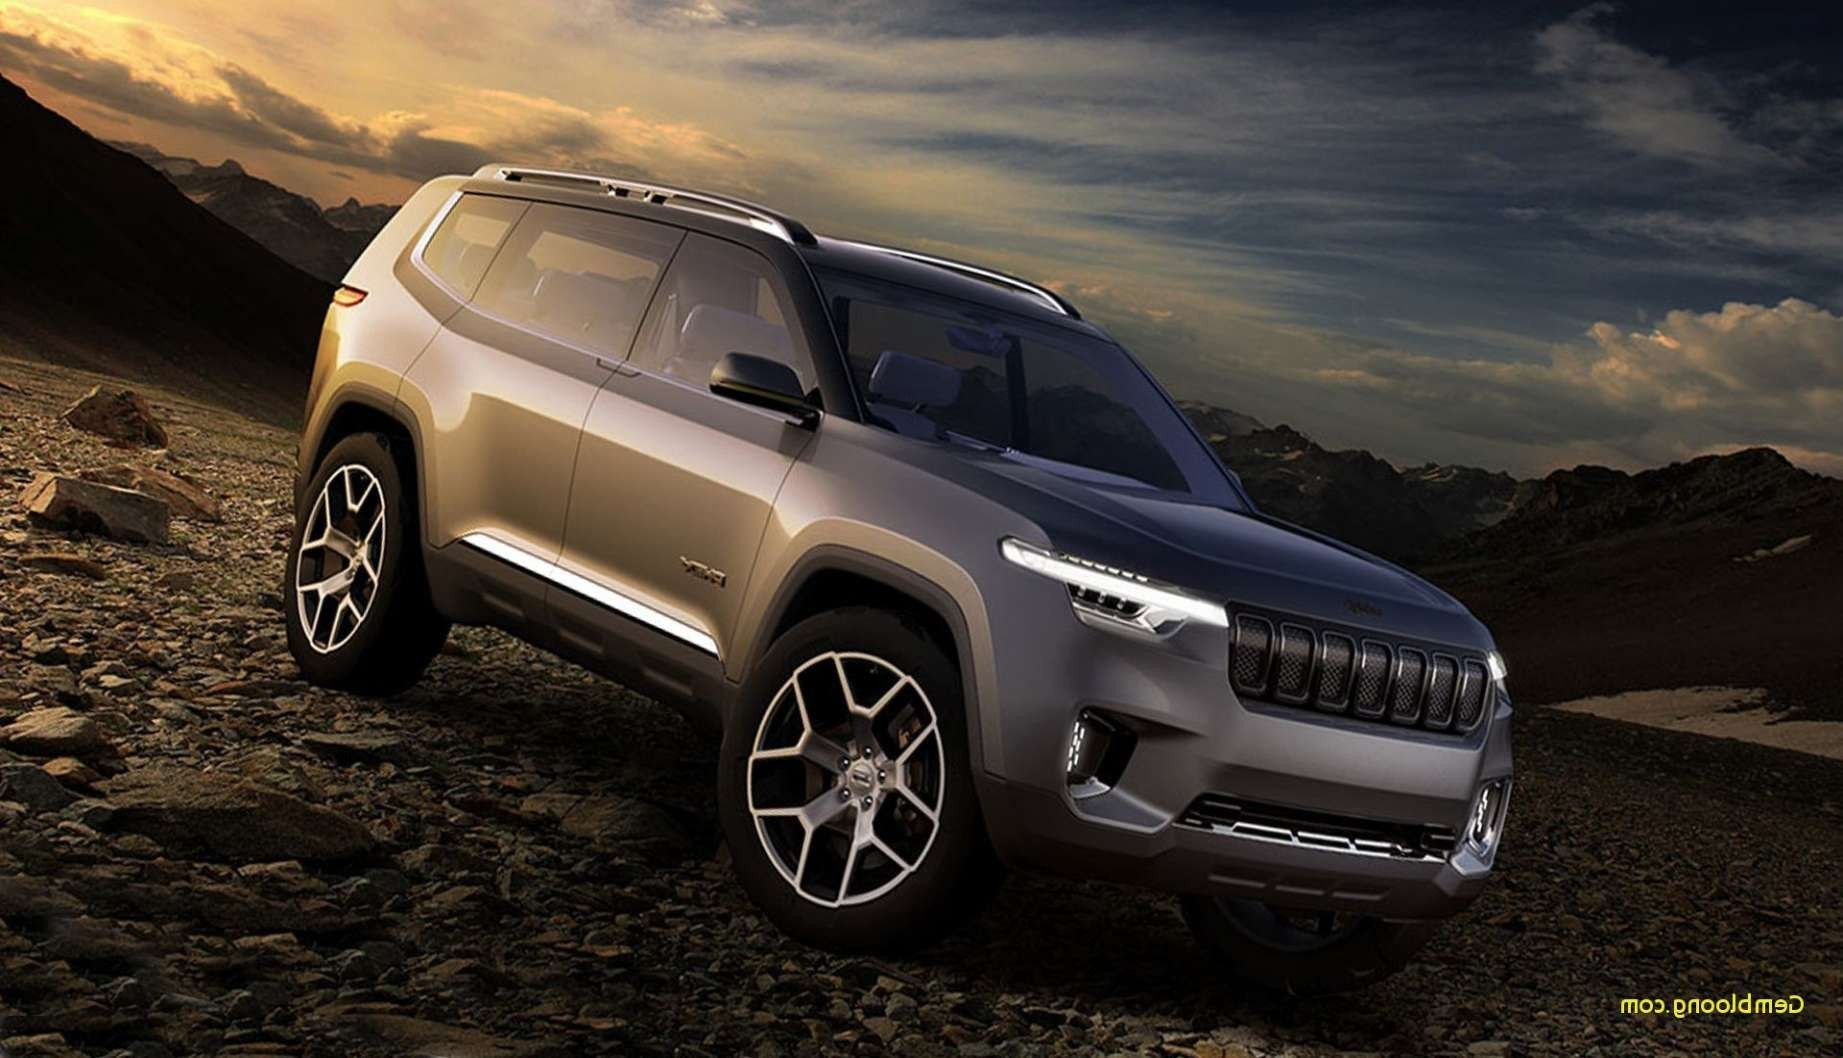 Best 2020 Jeep Jeepster Redesign Jeep Grand Cherokee Jeep Grand